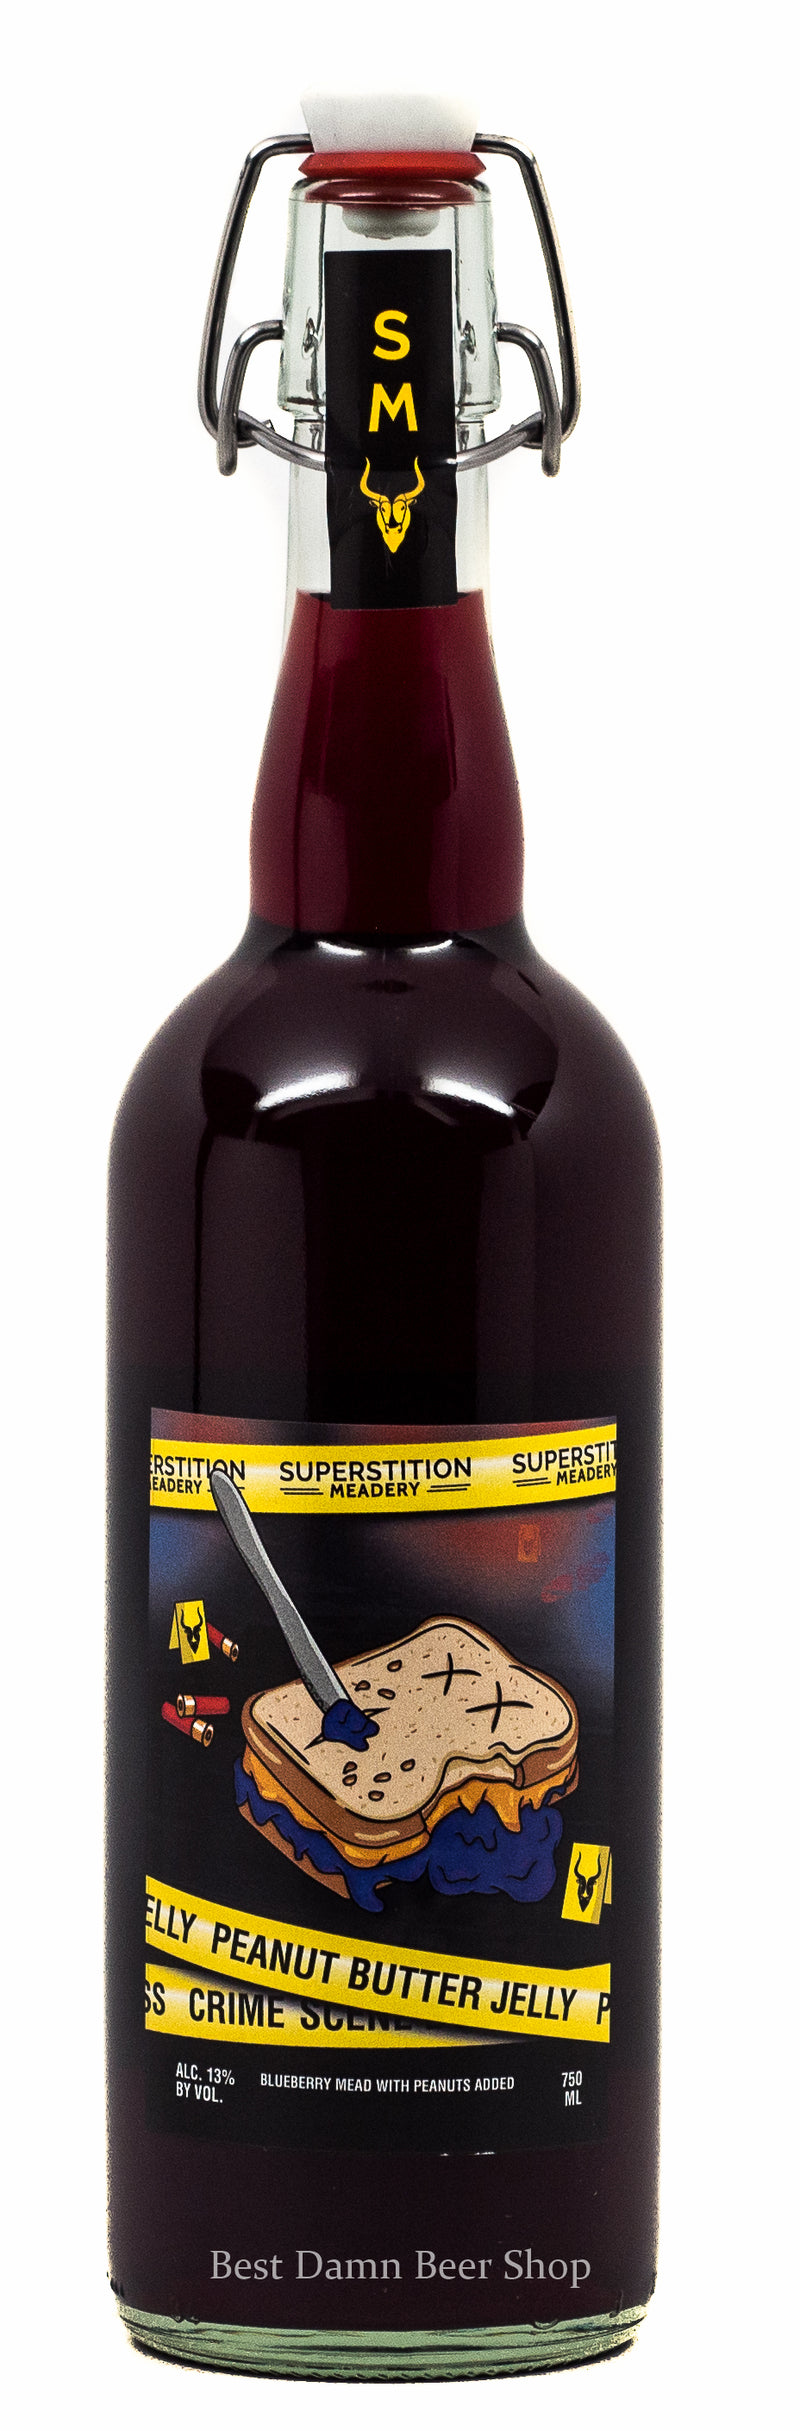 Superstition Meadery Peanut Butter Jelly Crime 750ml